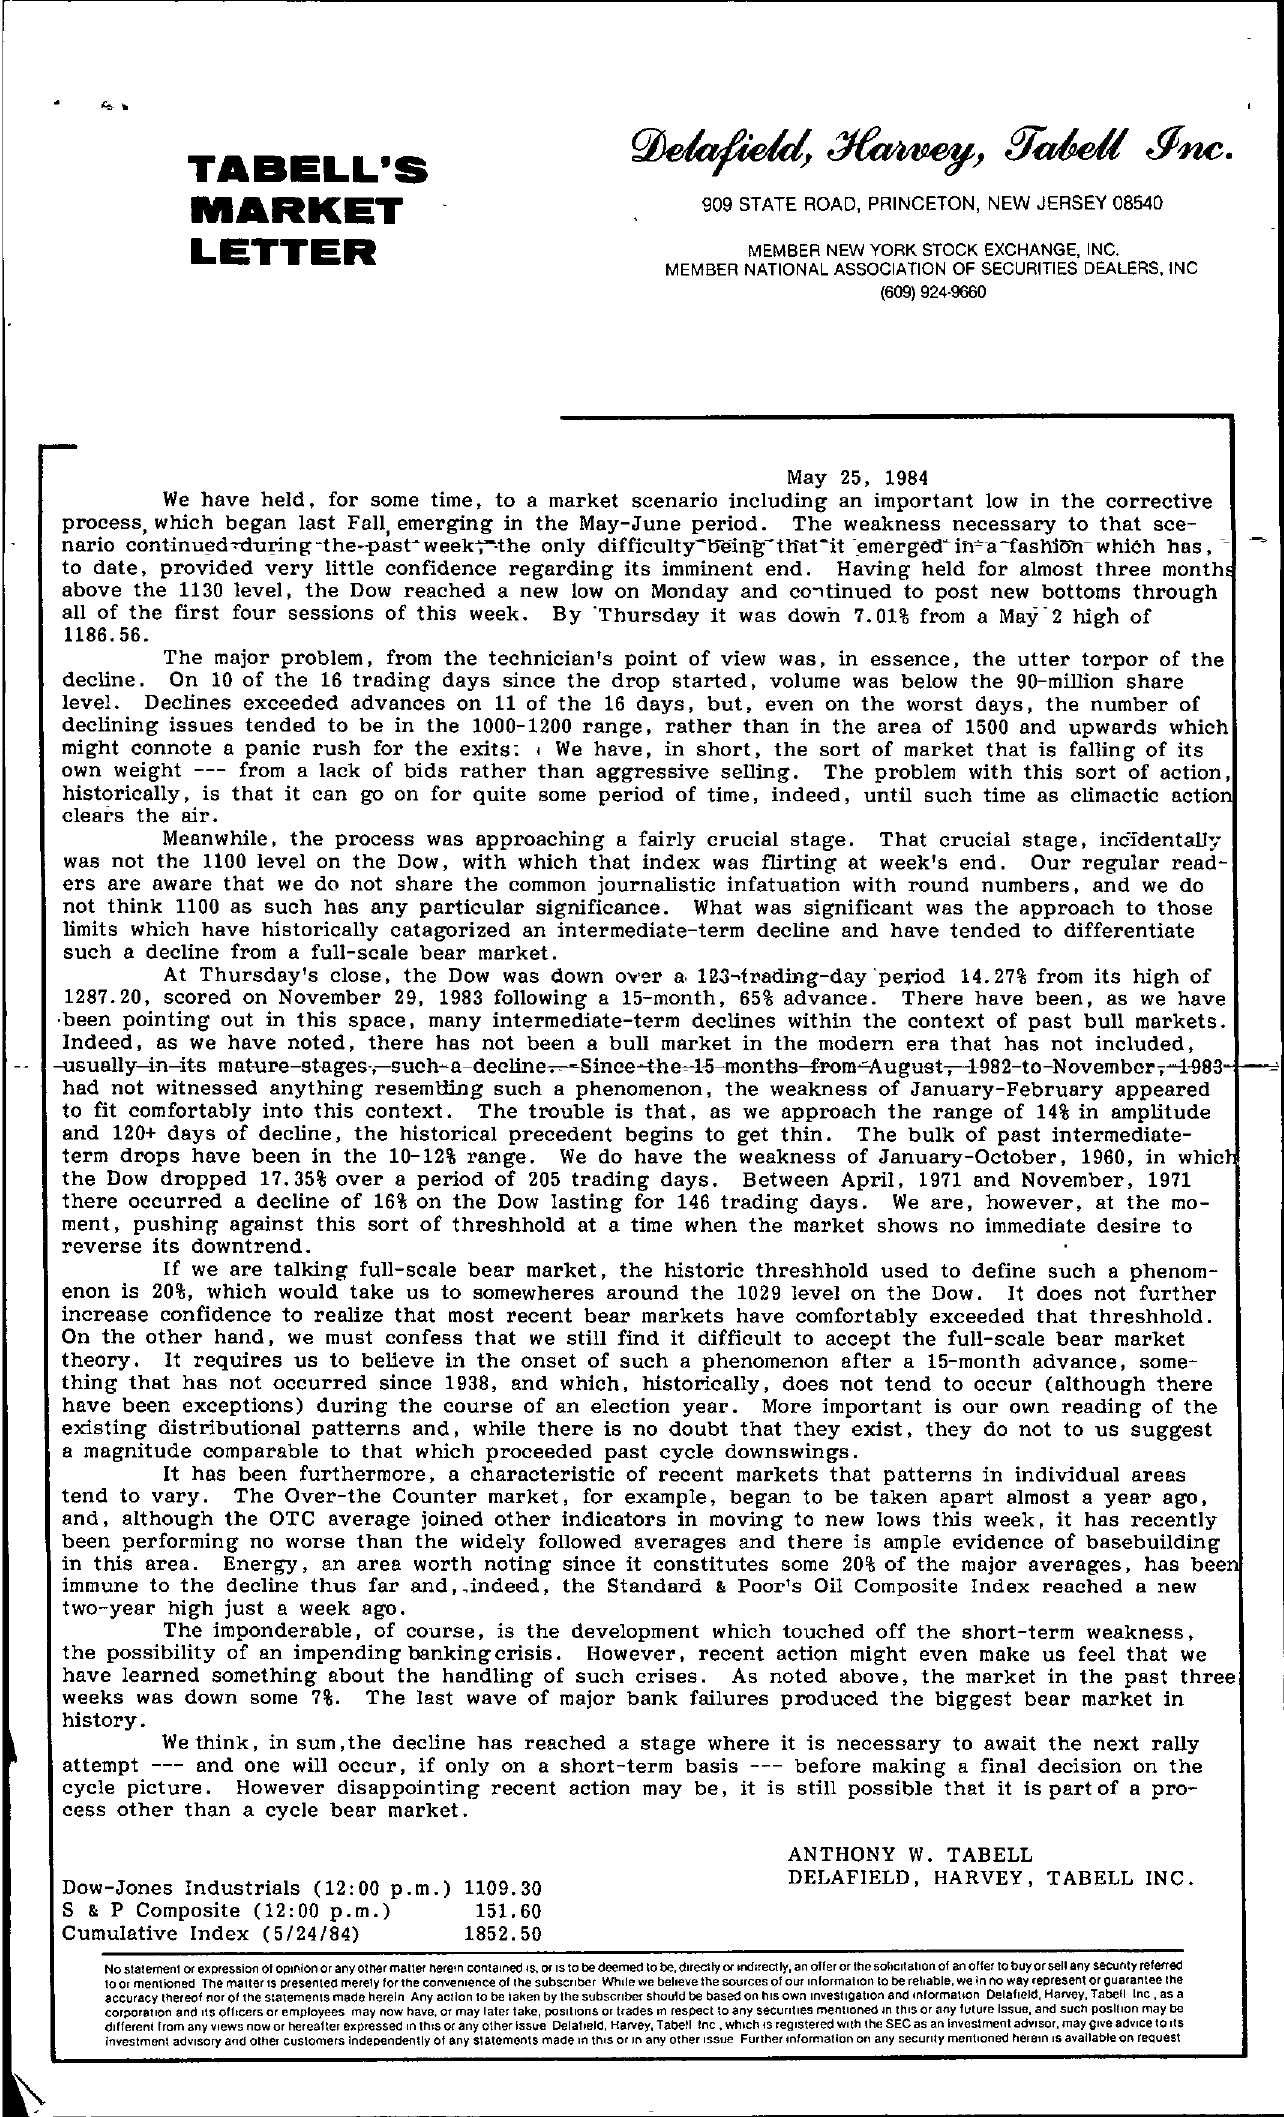 Tabell's Market Letter - May 25, 1984